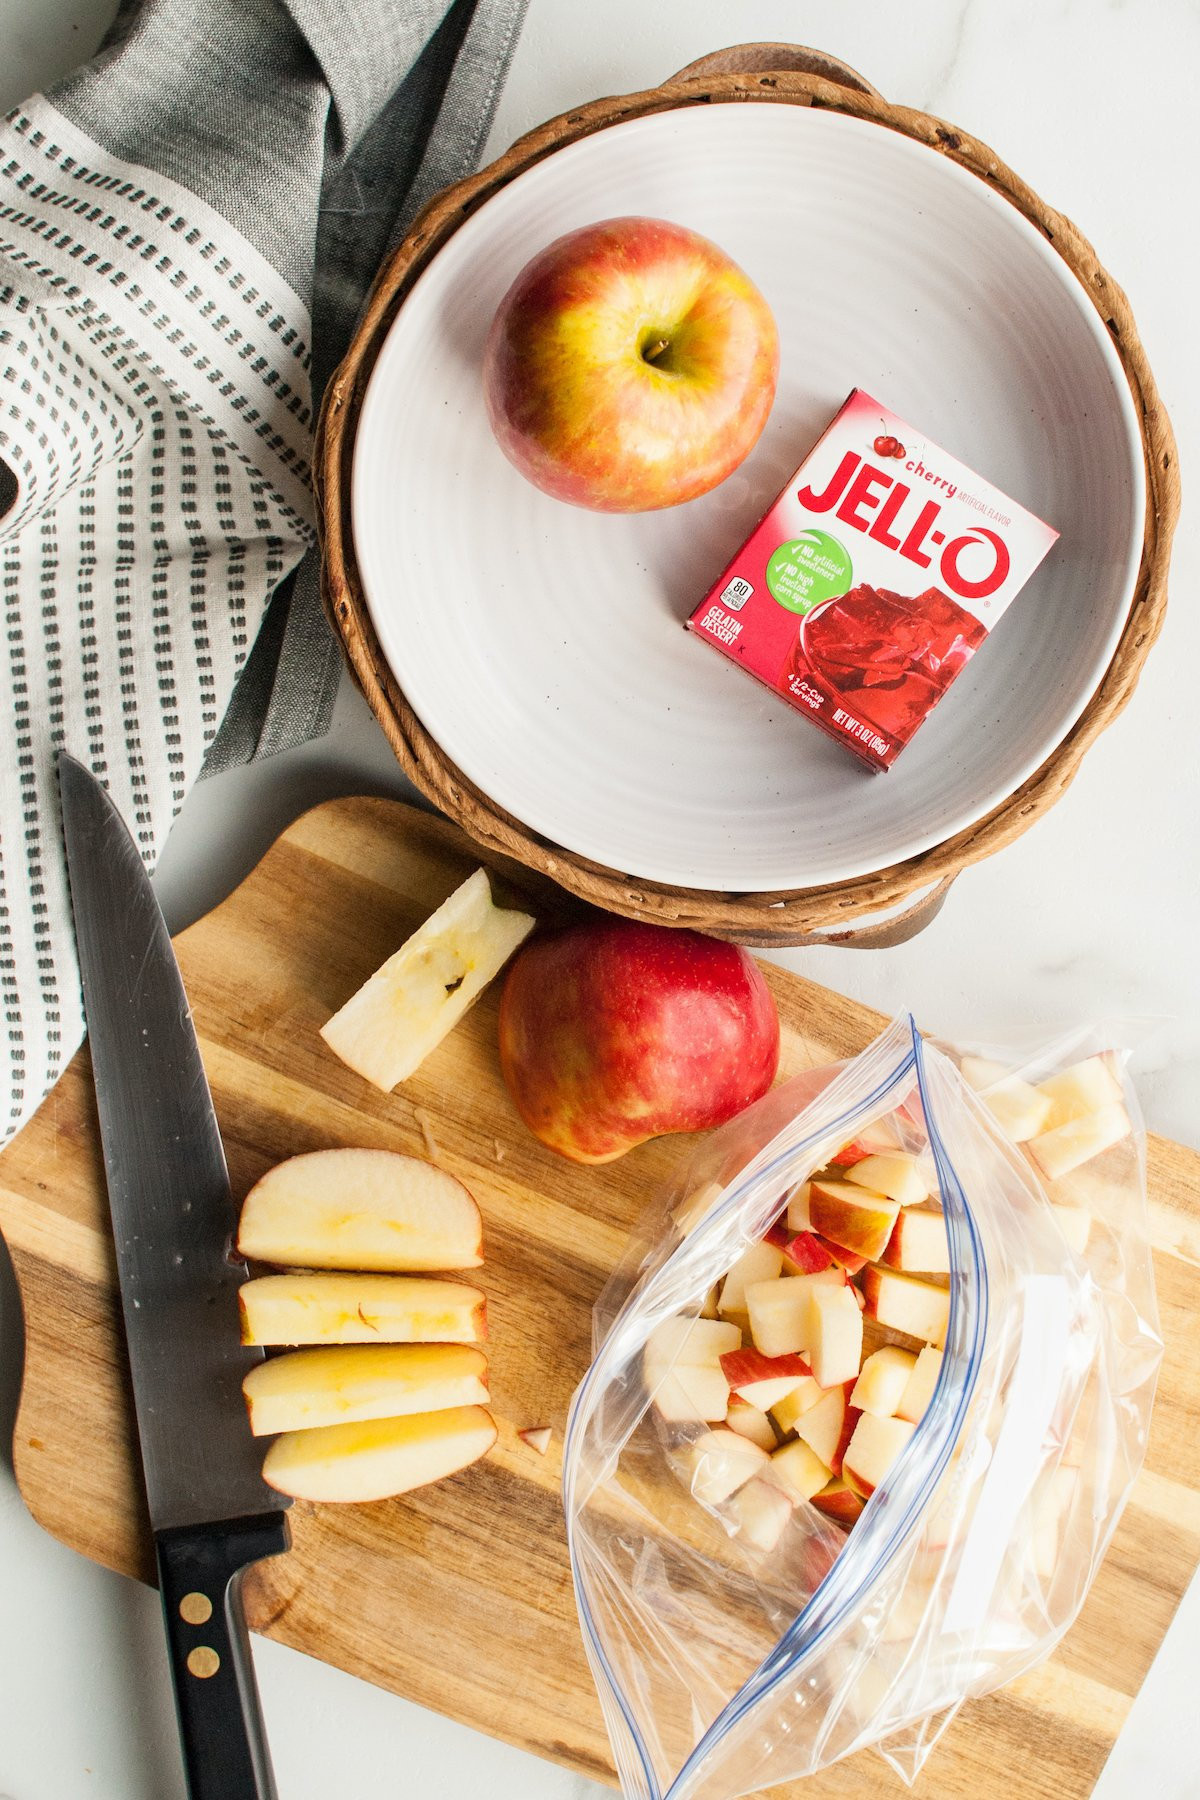 Chopped apples being put into a Ziploc bag.